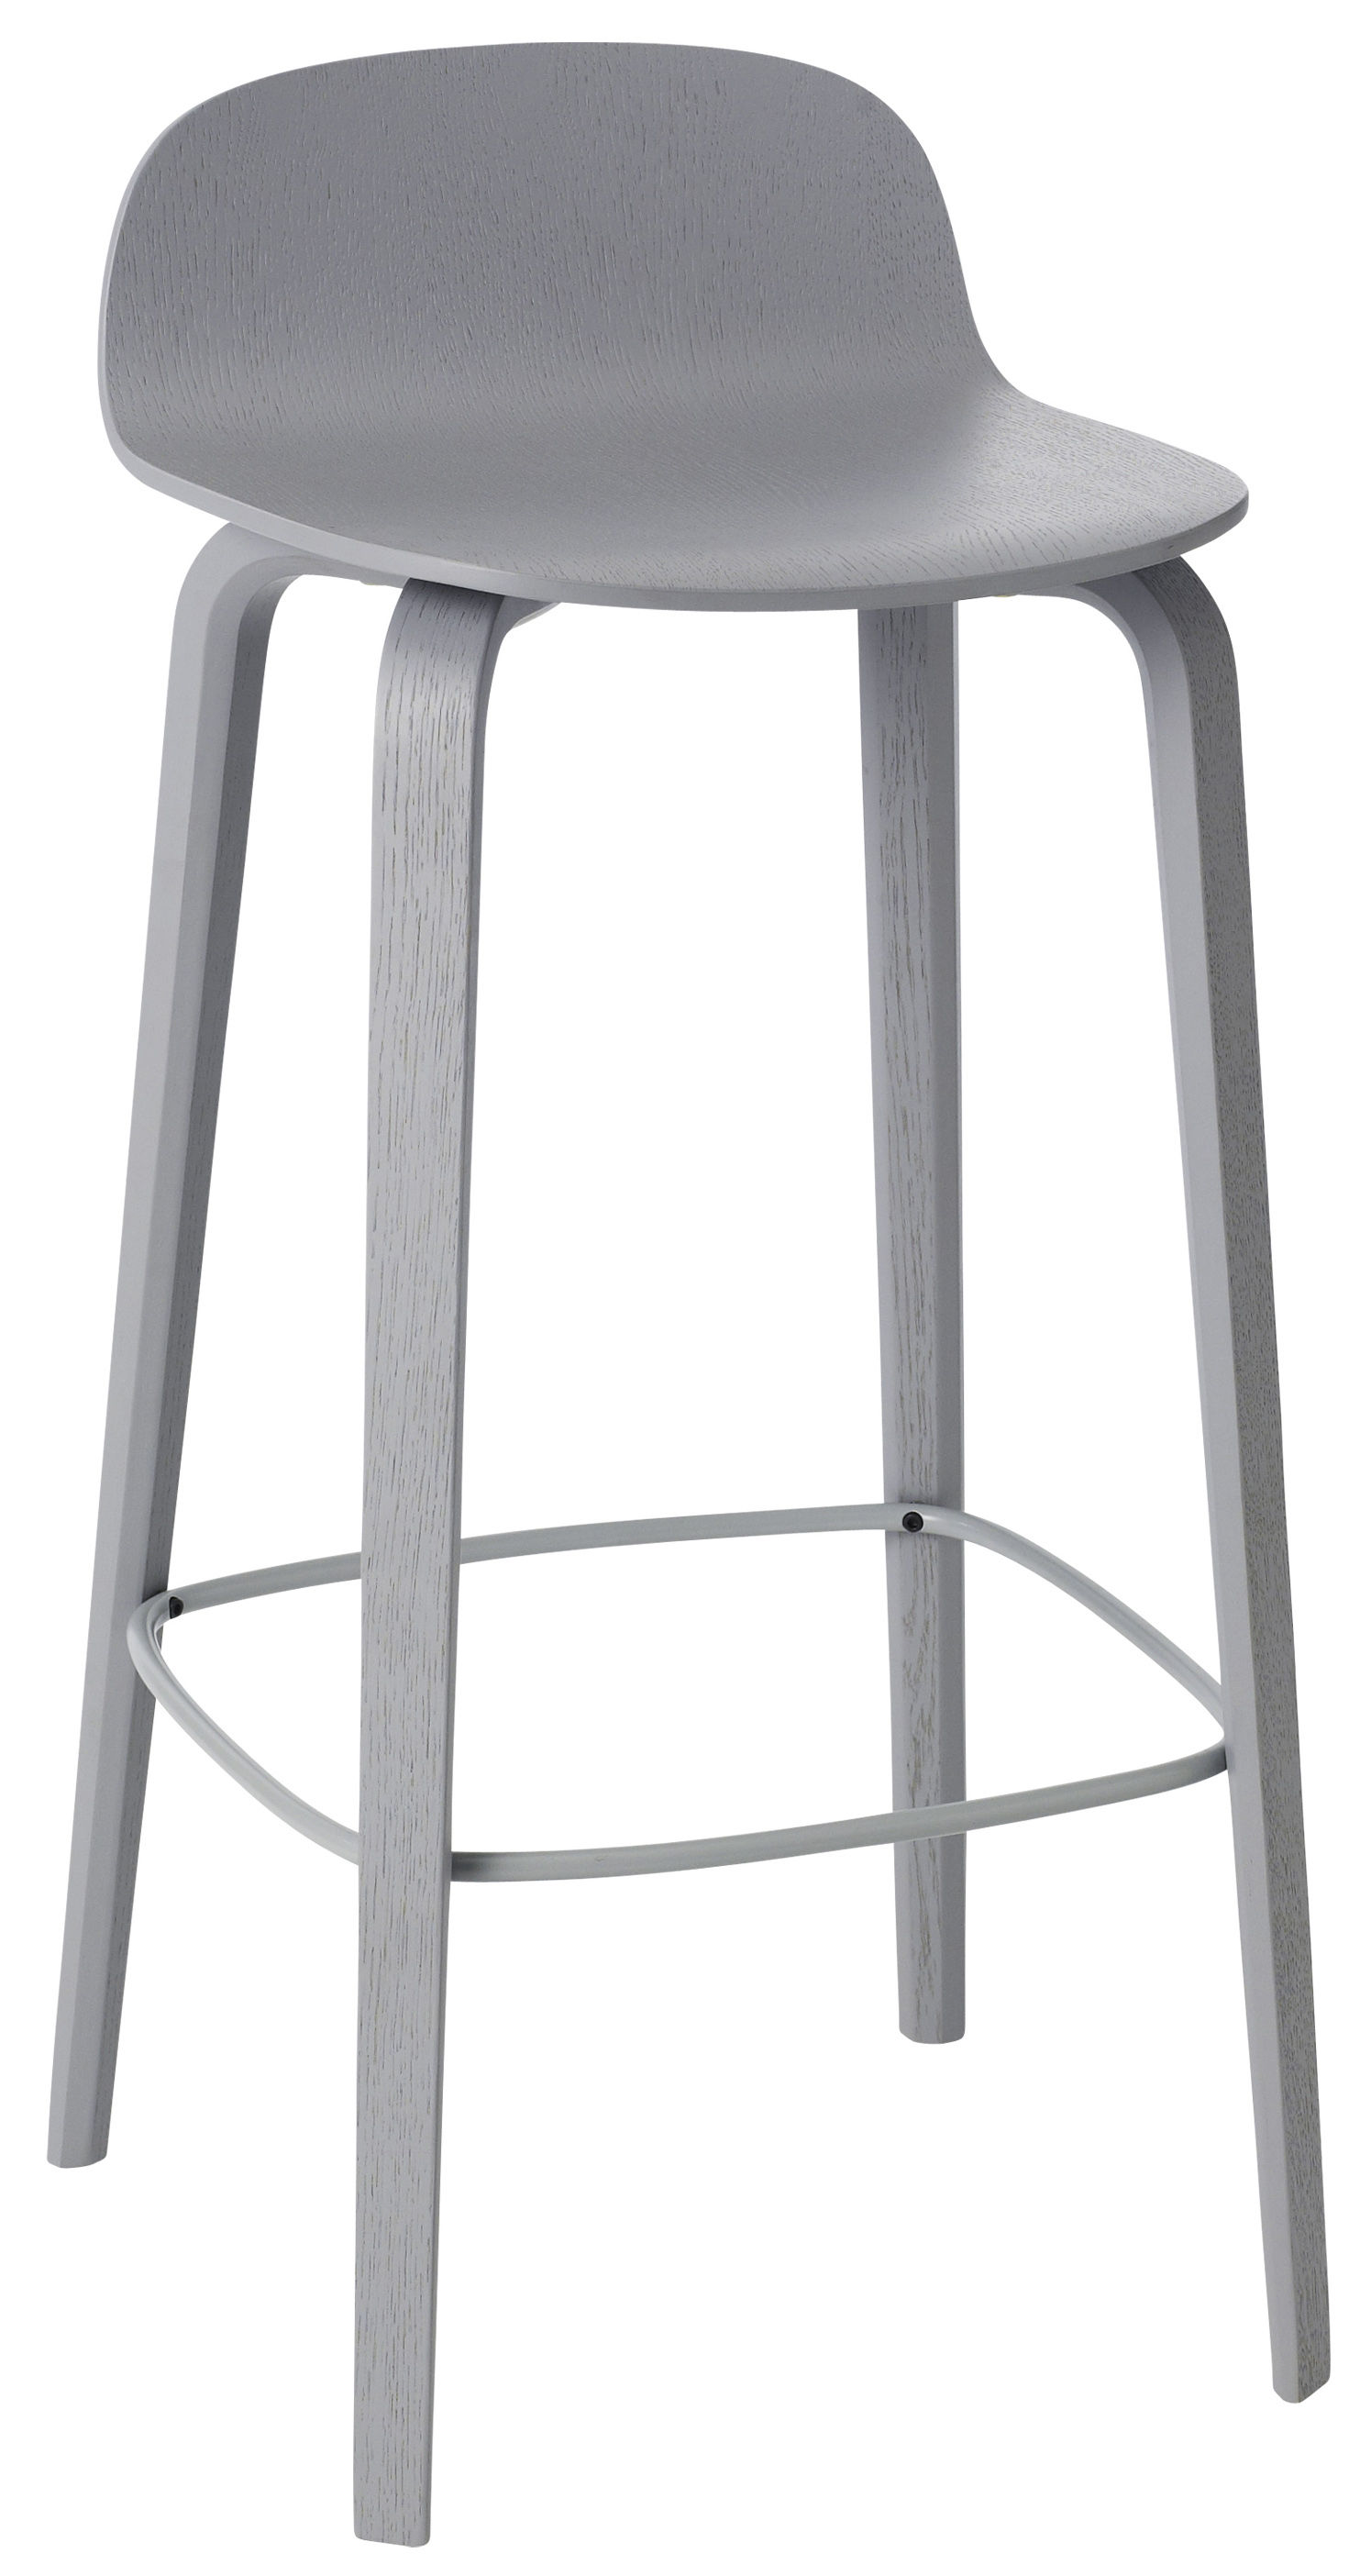 Visu Bar Stool Wood H 75cm Grey By Muuto